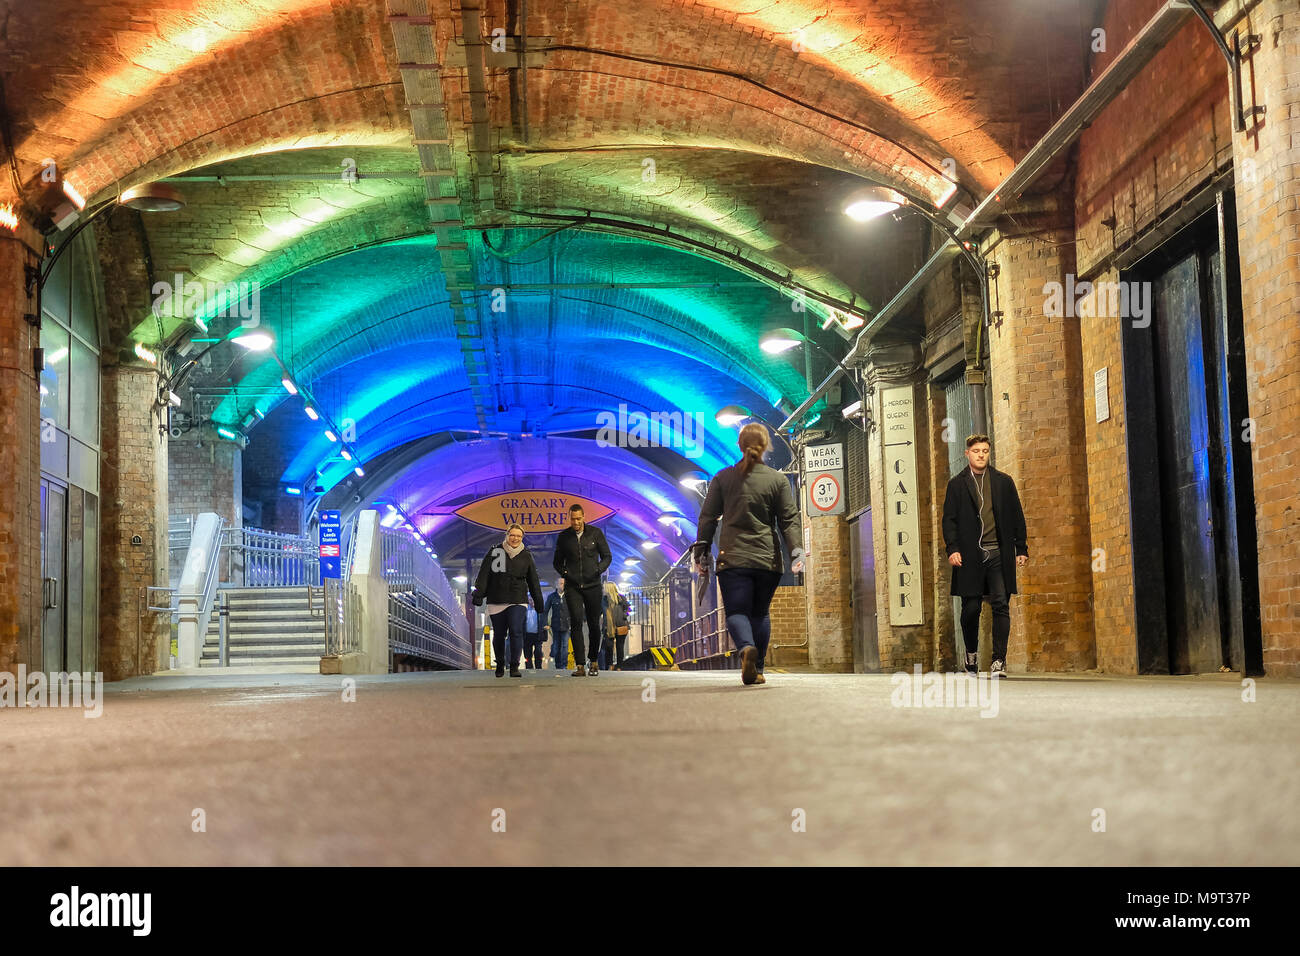 The Dark Arches, Granary Wharf in Leeds, West Yorkshire, England. Stock Photo